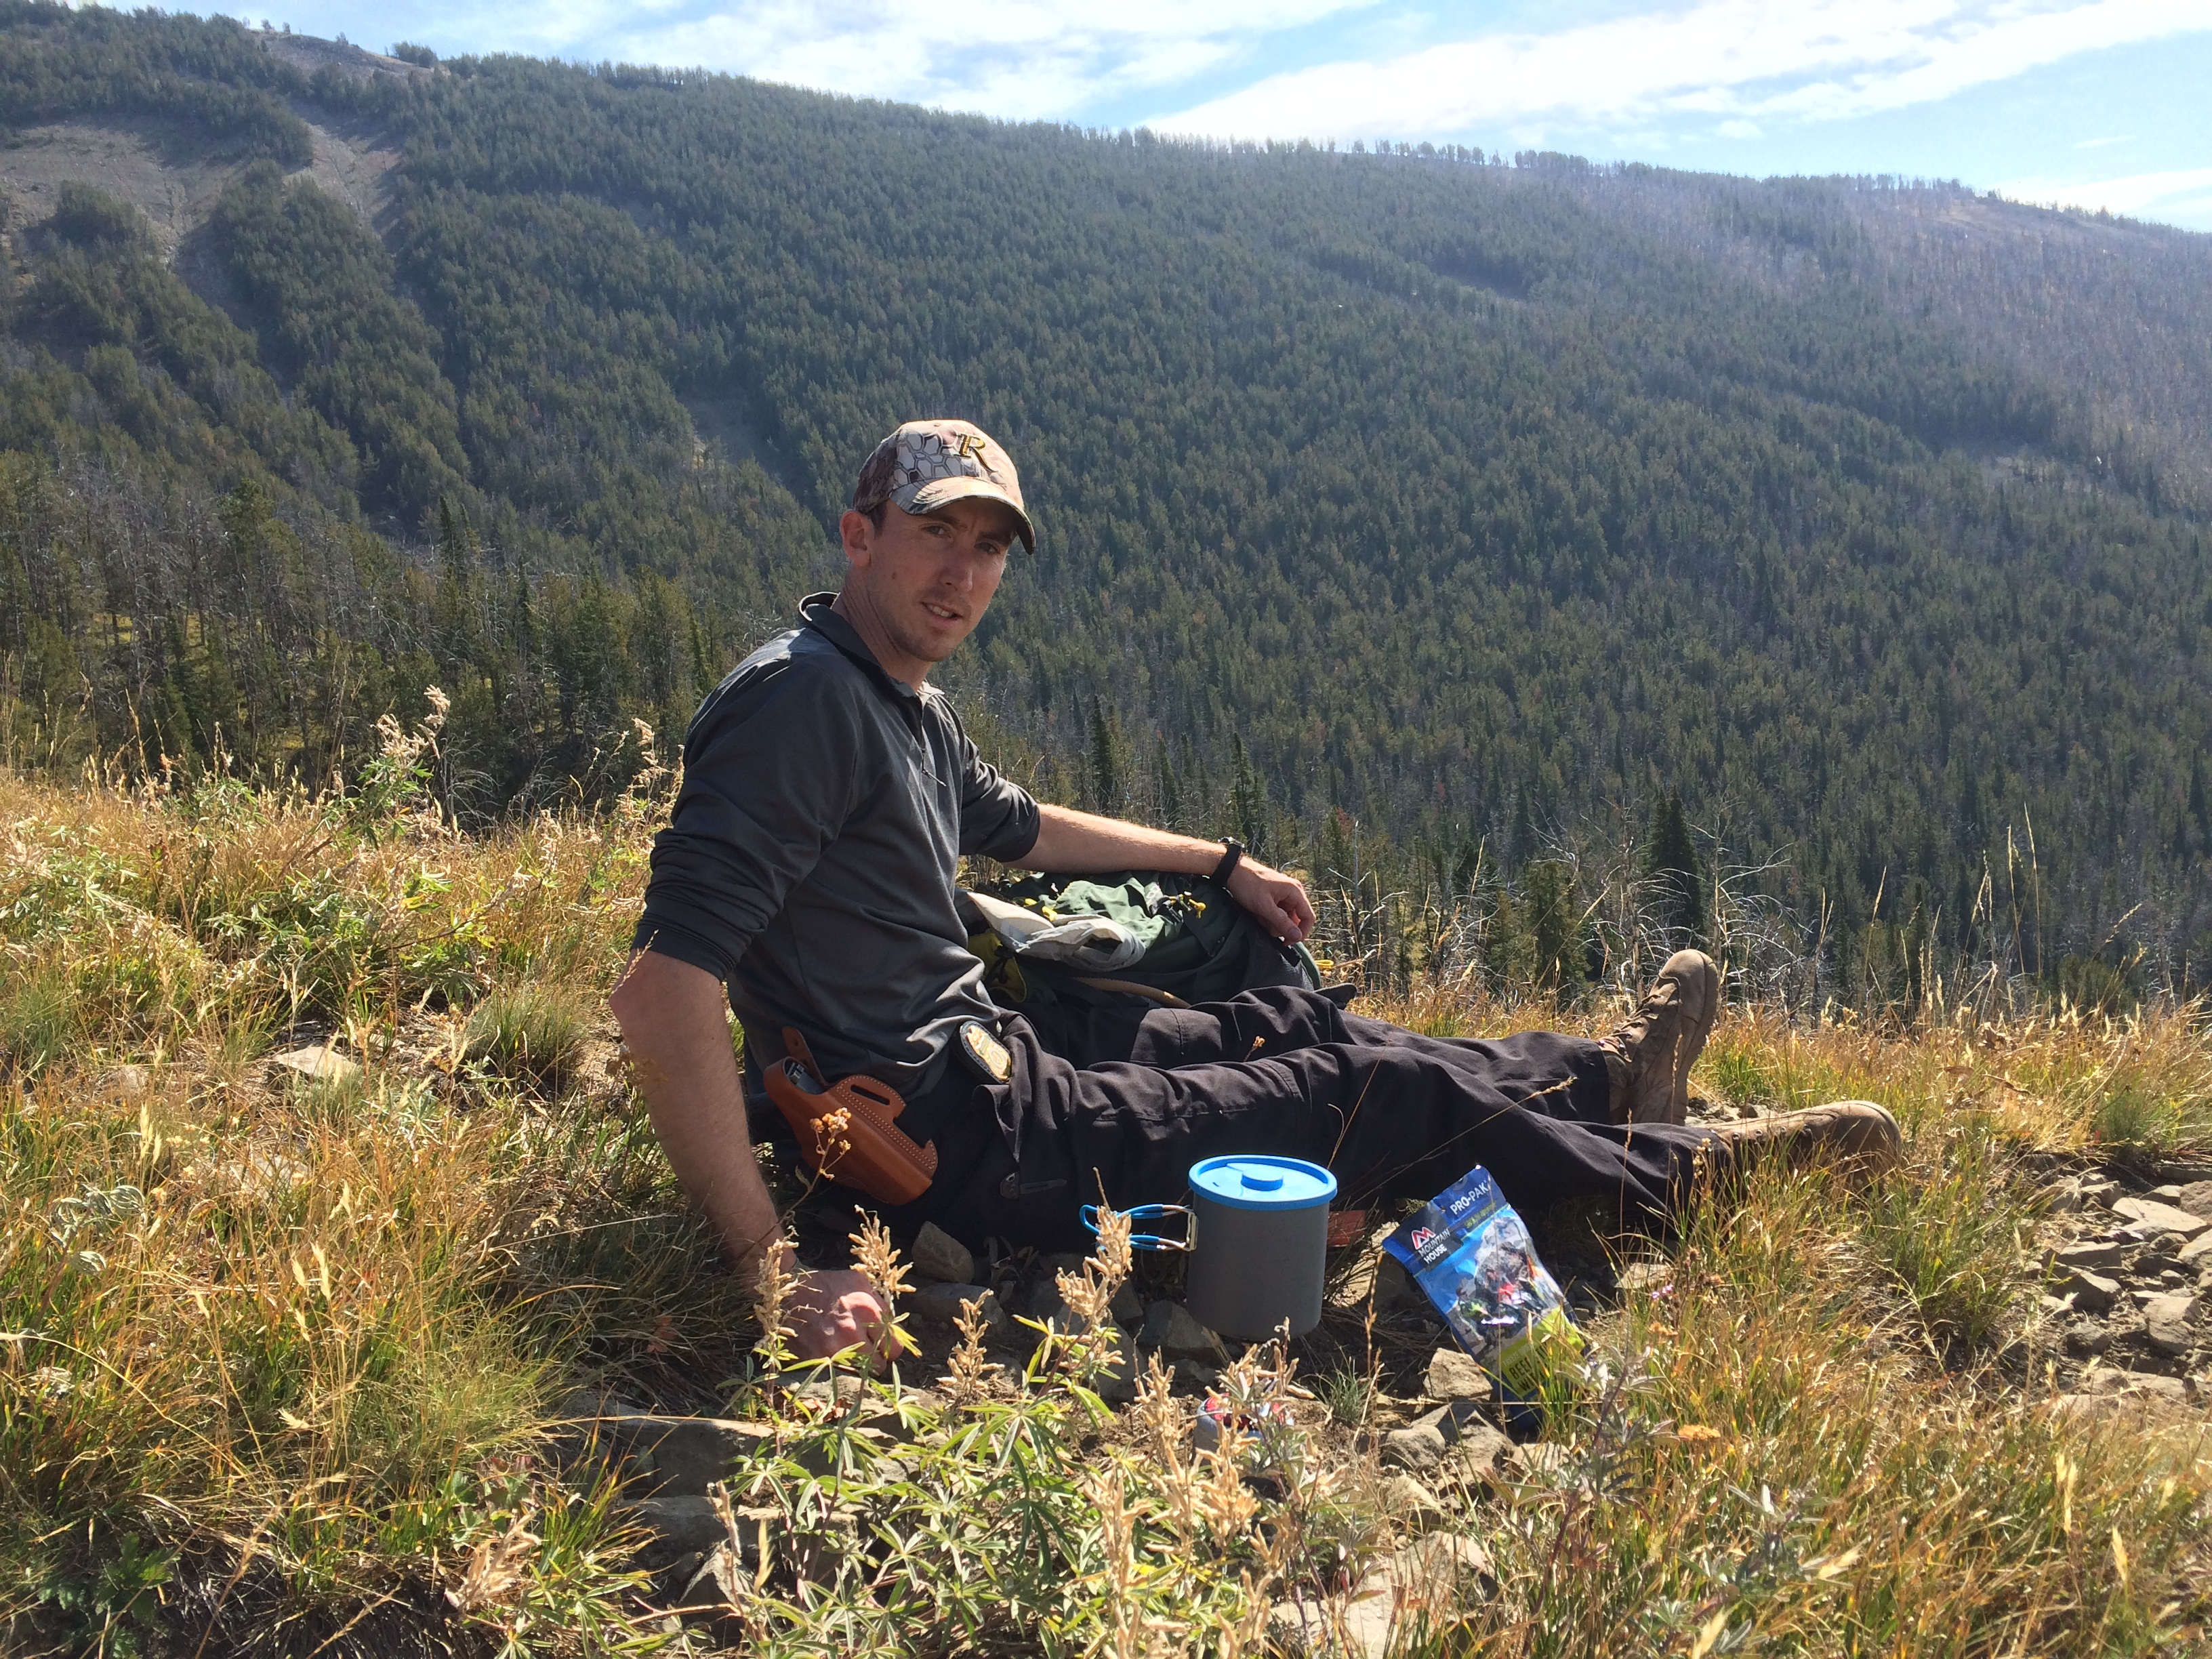 Linhart assisting with a reconnaissance mission to observe off-highway vehicle use in the mountains on the Custer Gallatin National Forest. (Photo Credit: USDA Forest Service.)